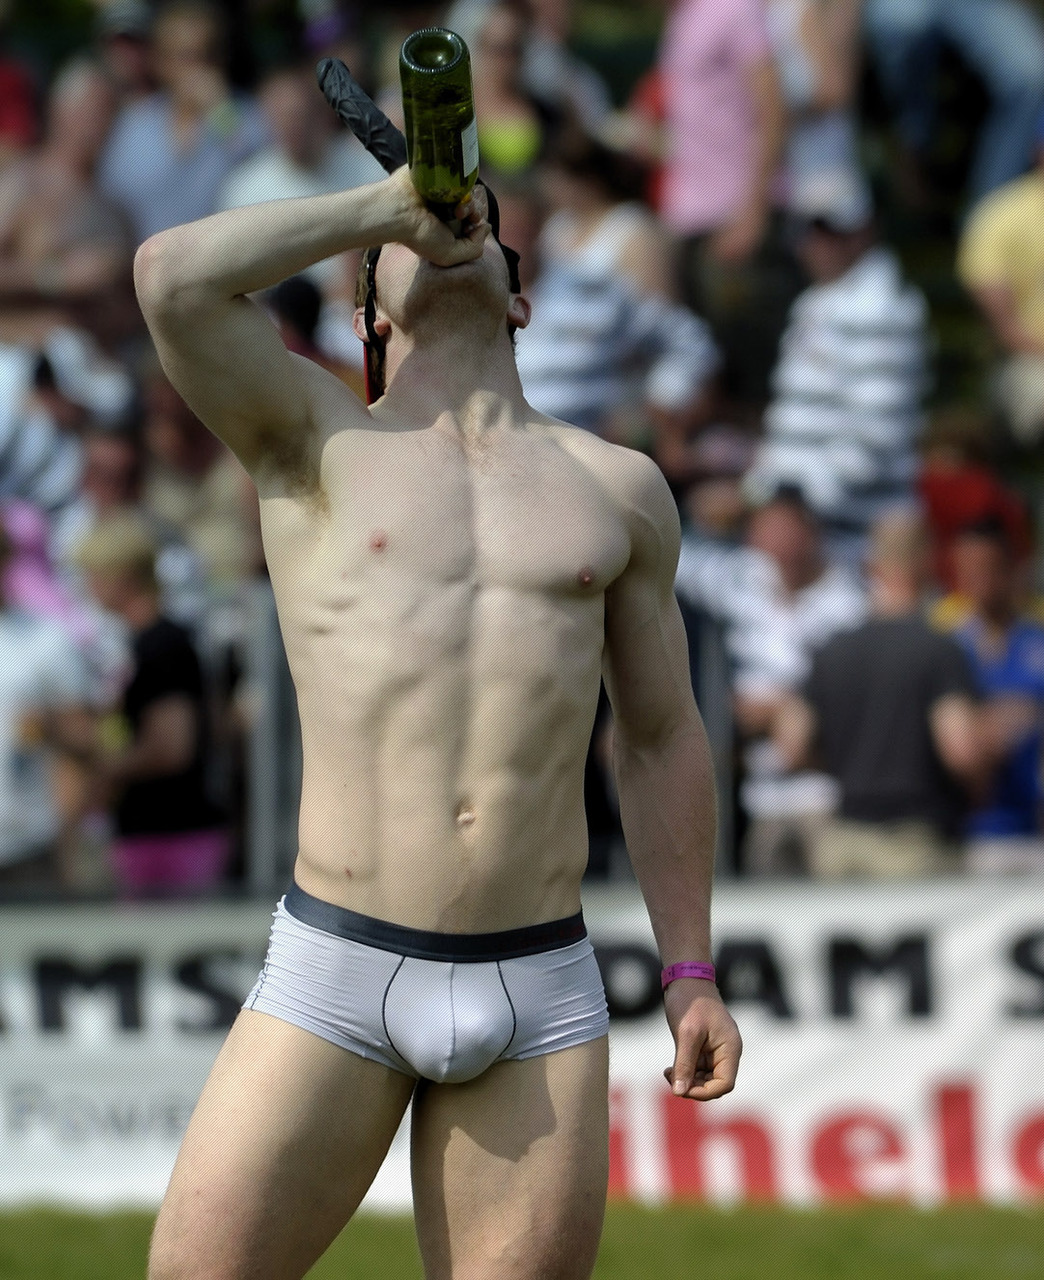 hot bulges to drink on